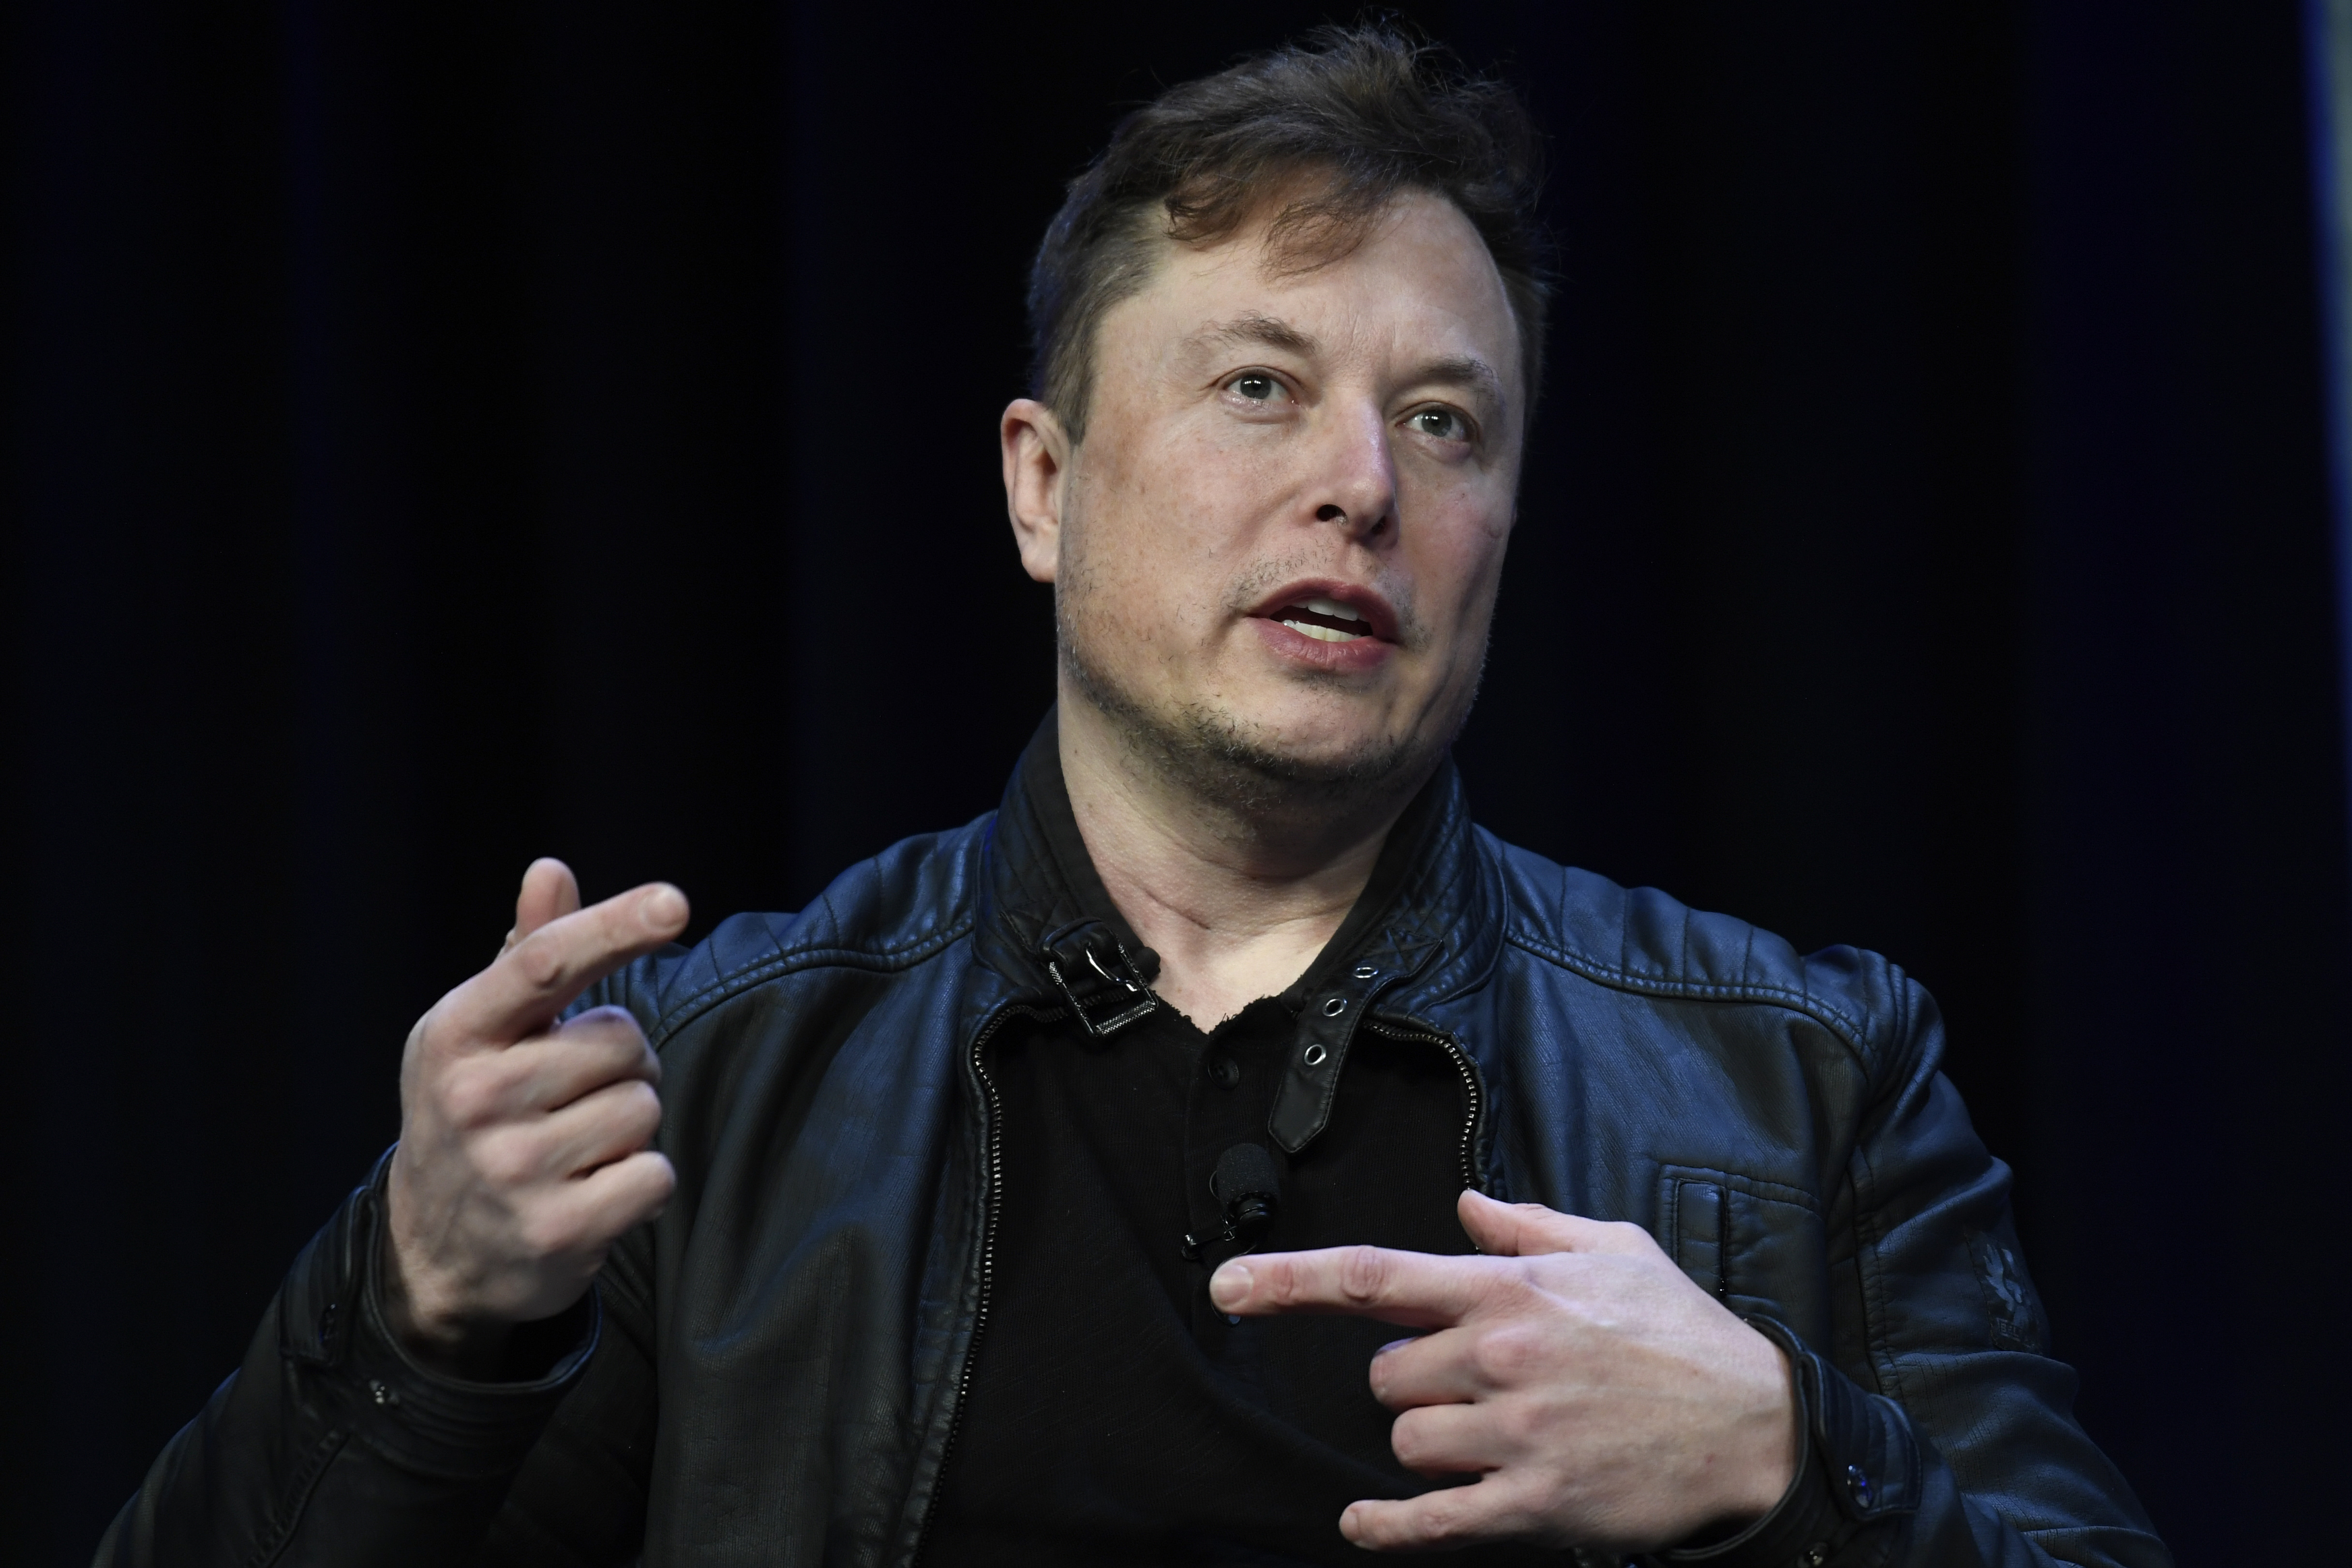 Elon Musk speaks at the SATELLITE Conference and Exhibition